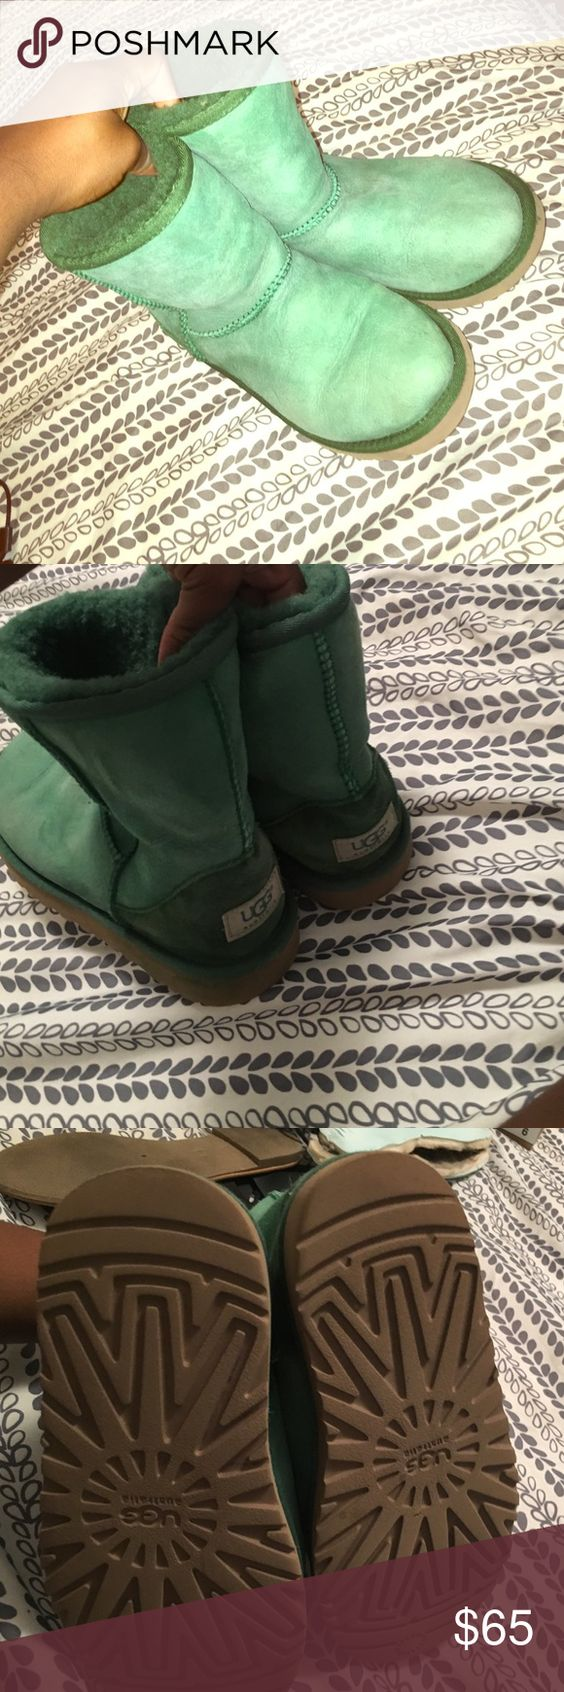 Pine Classic UGG Most comfortable uggs ever . The color is very vibrant and cute . Worn a few times, I've cleaned them which left a few staining, not to noticeable . Crease not noticeable if you wear either UGG Shoes Ankle Boots & Booties